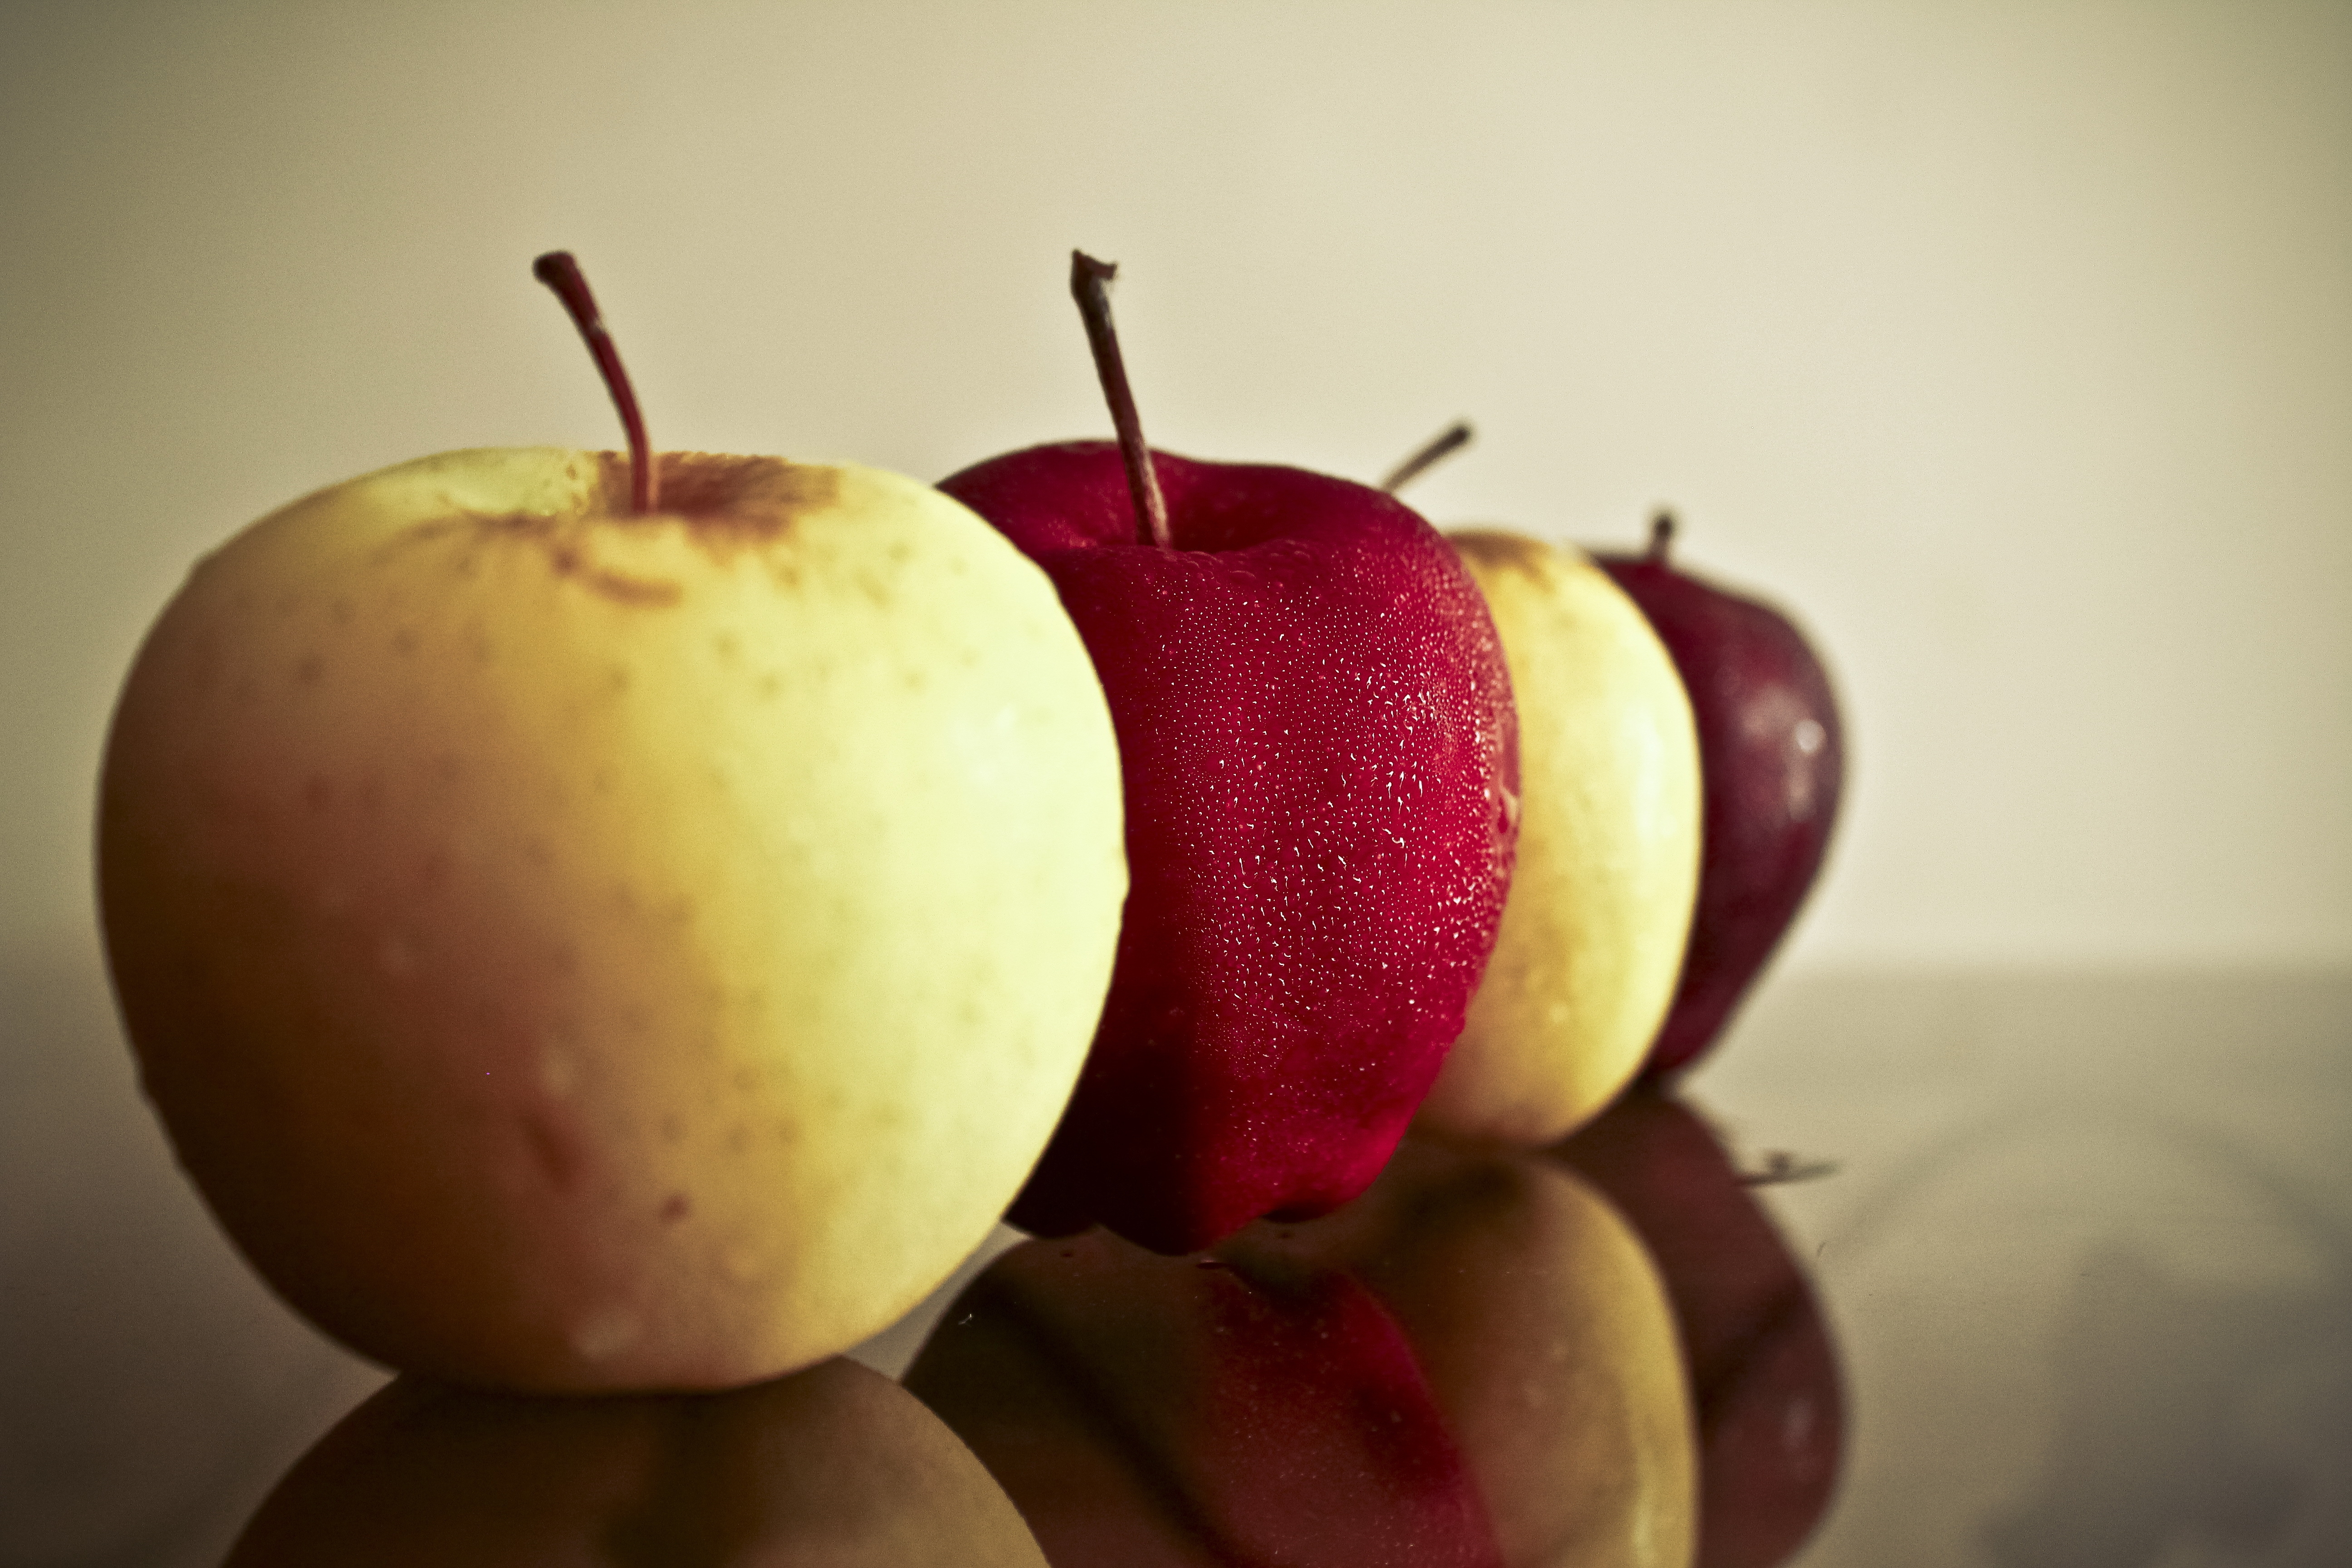 84844 download wallpaper Food, Mirror, Reflection, Drops, Apples screensavers and pictures for free